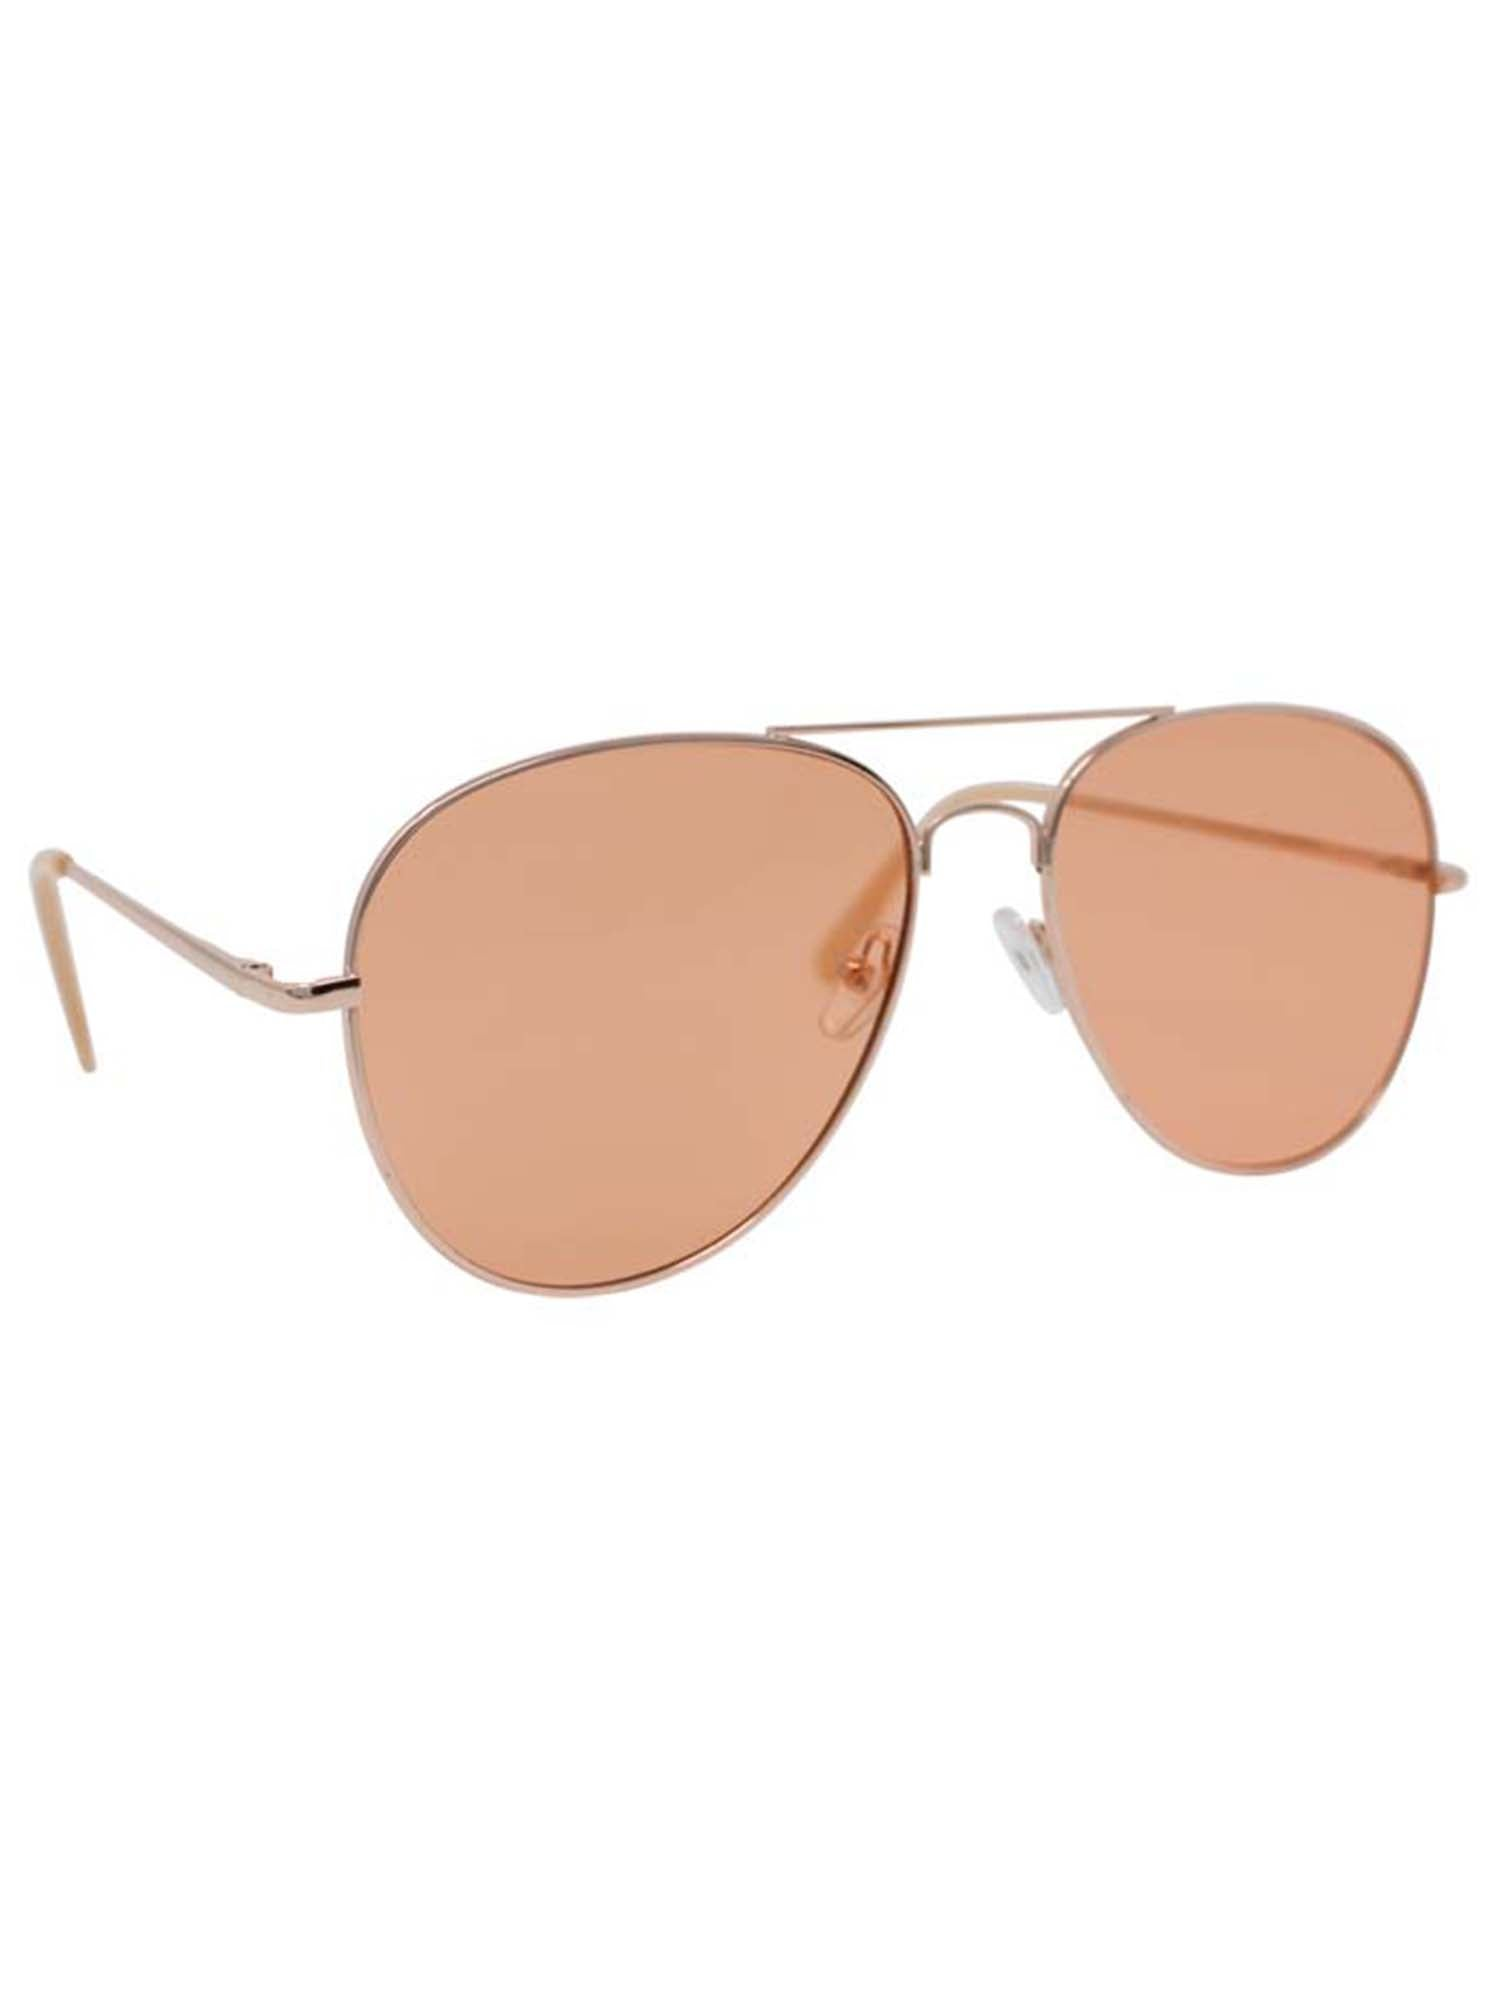 Pastel Color Aviator Style Sunglasses With Case